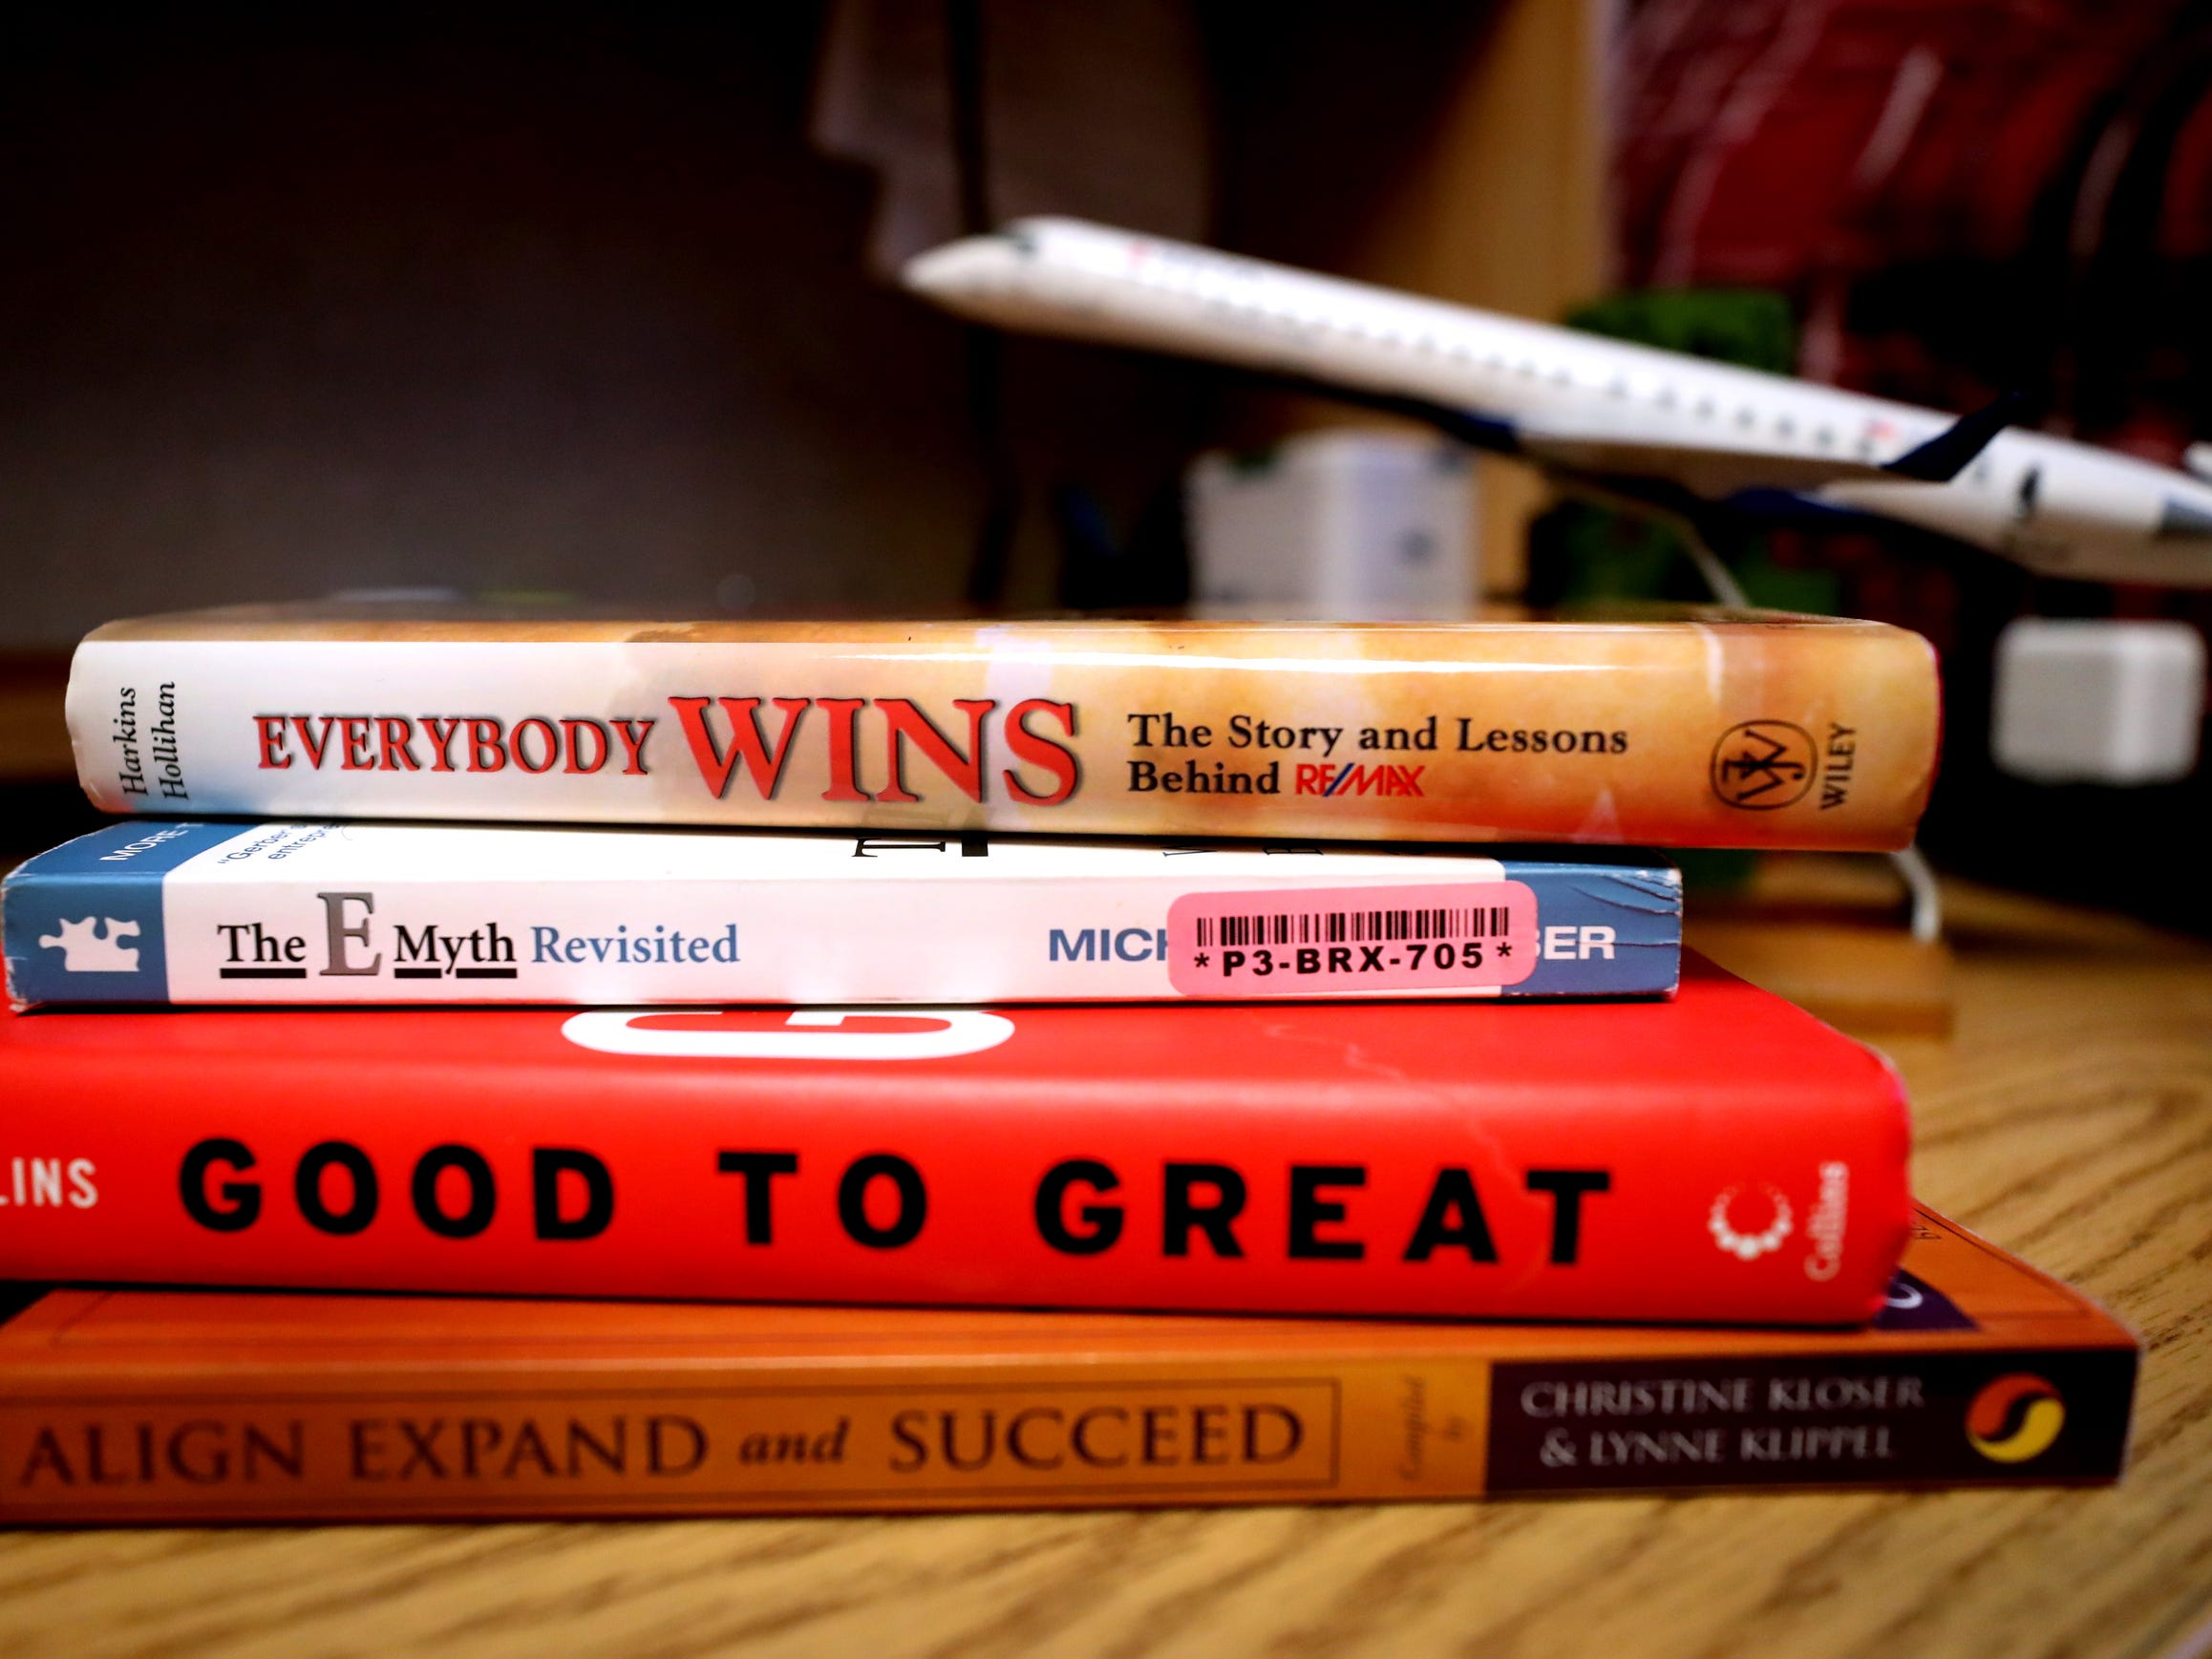 Some of the real estate and marketing books that Isaac Plata now uses in pursuing his new major.